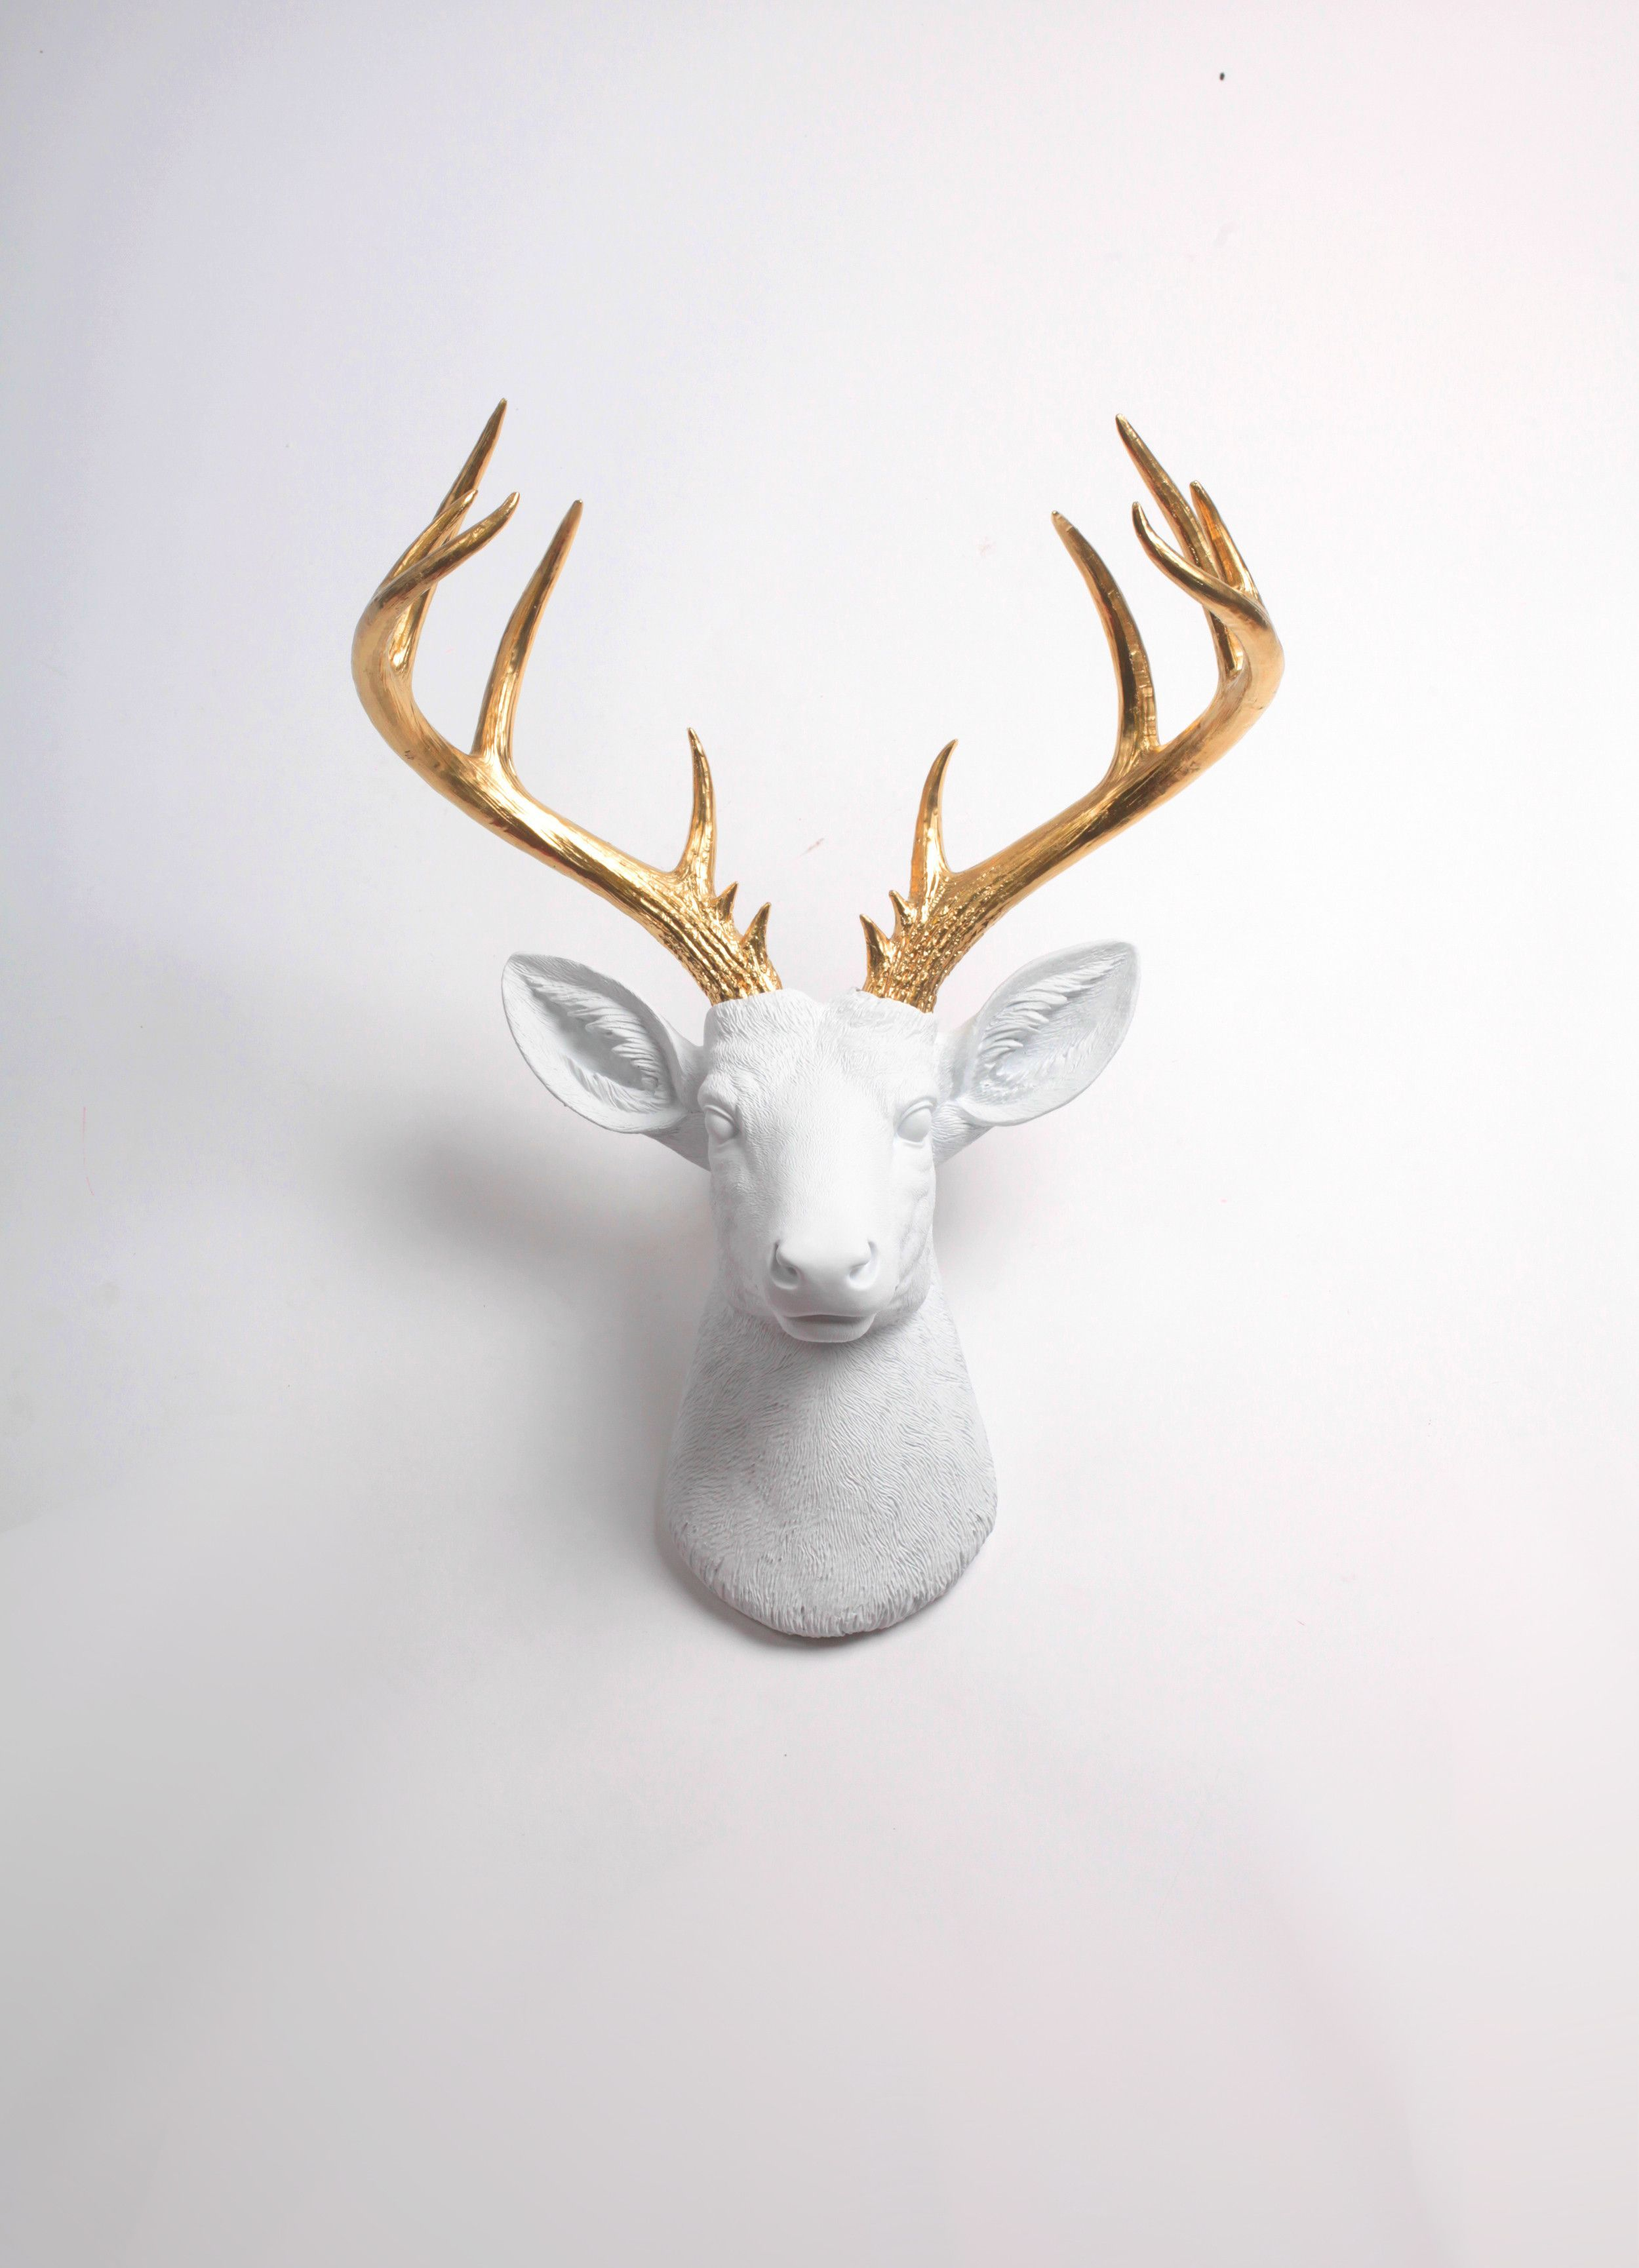 The Xl Alfred Modern Deer Head By White Faux Taxidermy White Deer W Gold Antlers Faux Deer Head Deer Heads Wall Deer Head Wall Decor